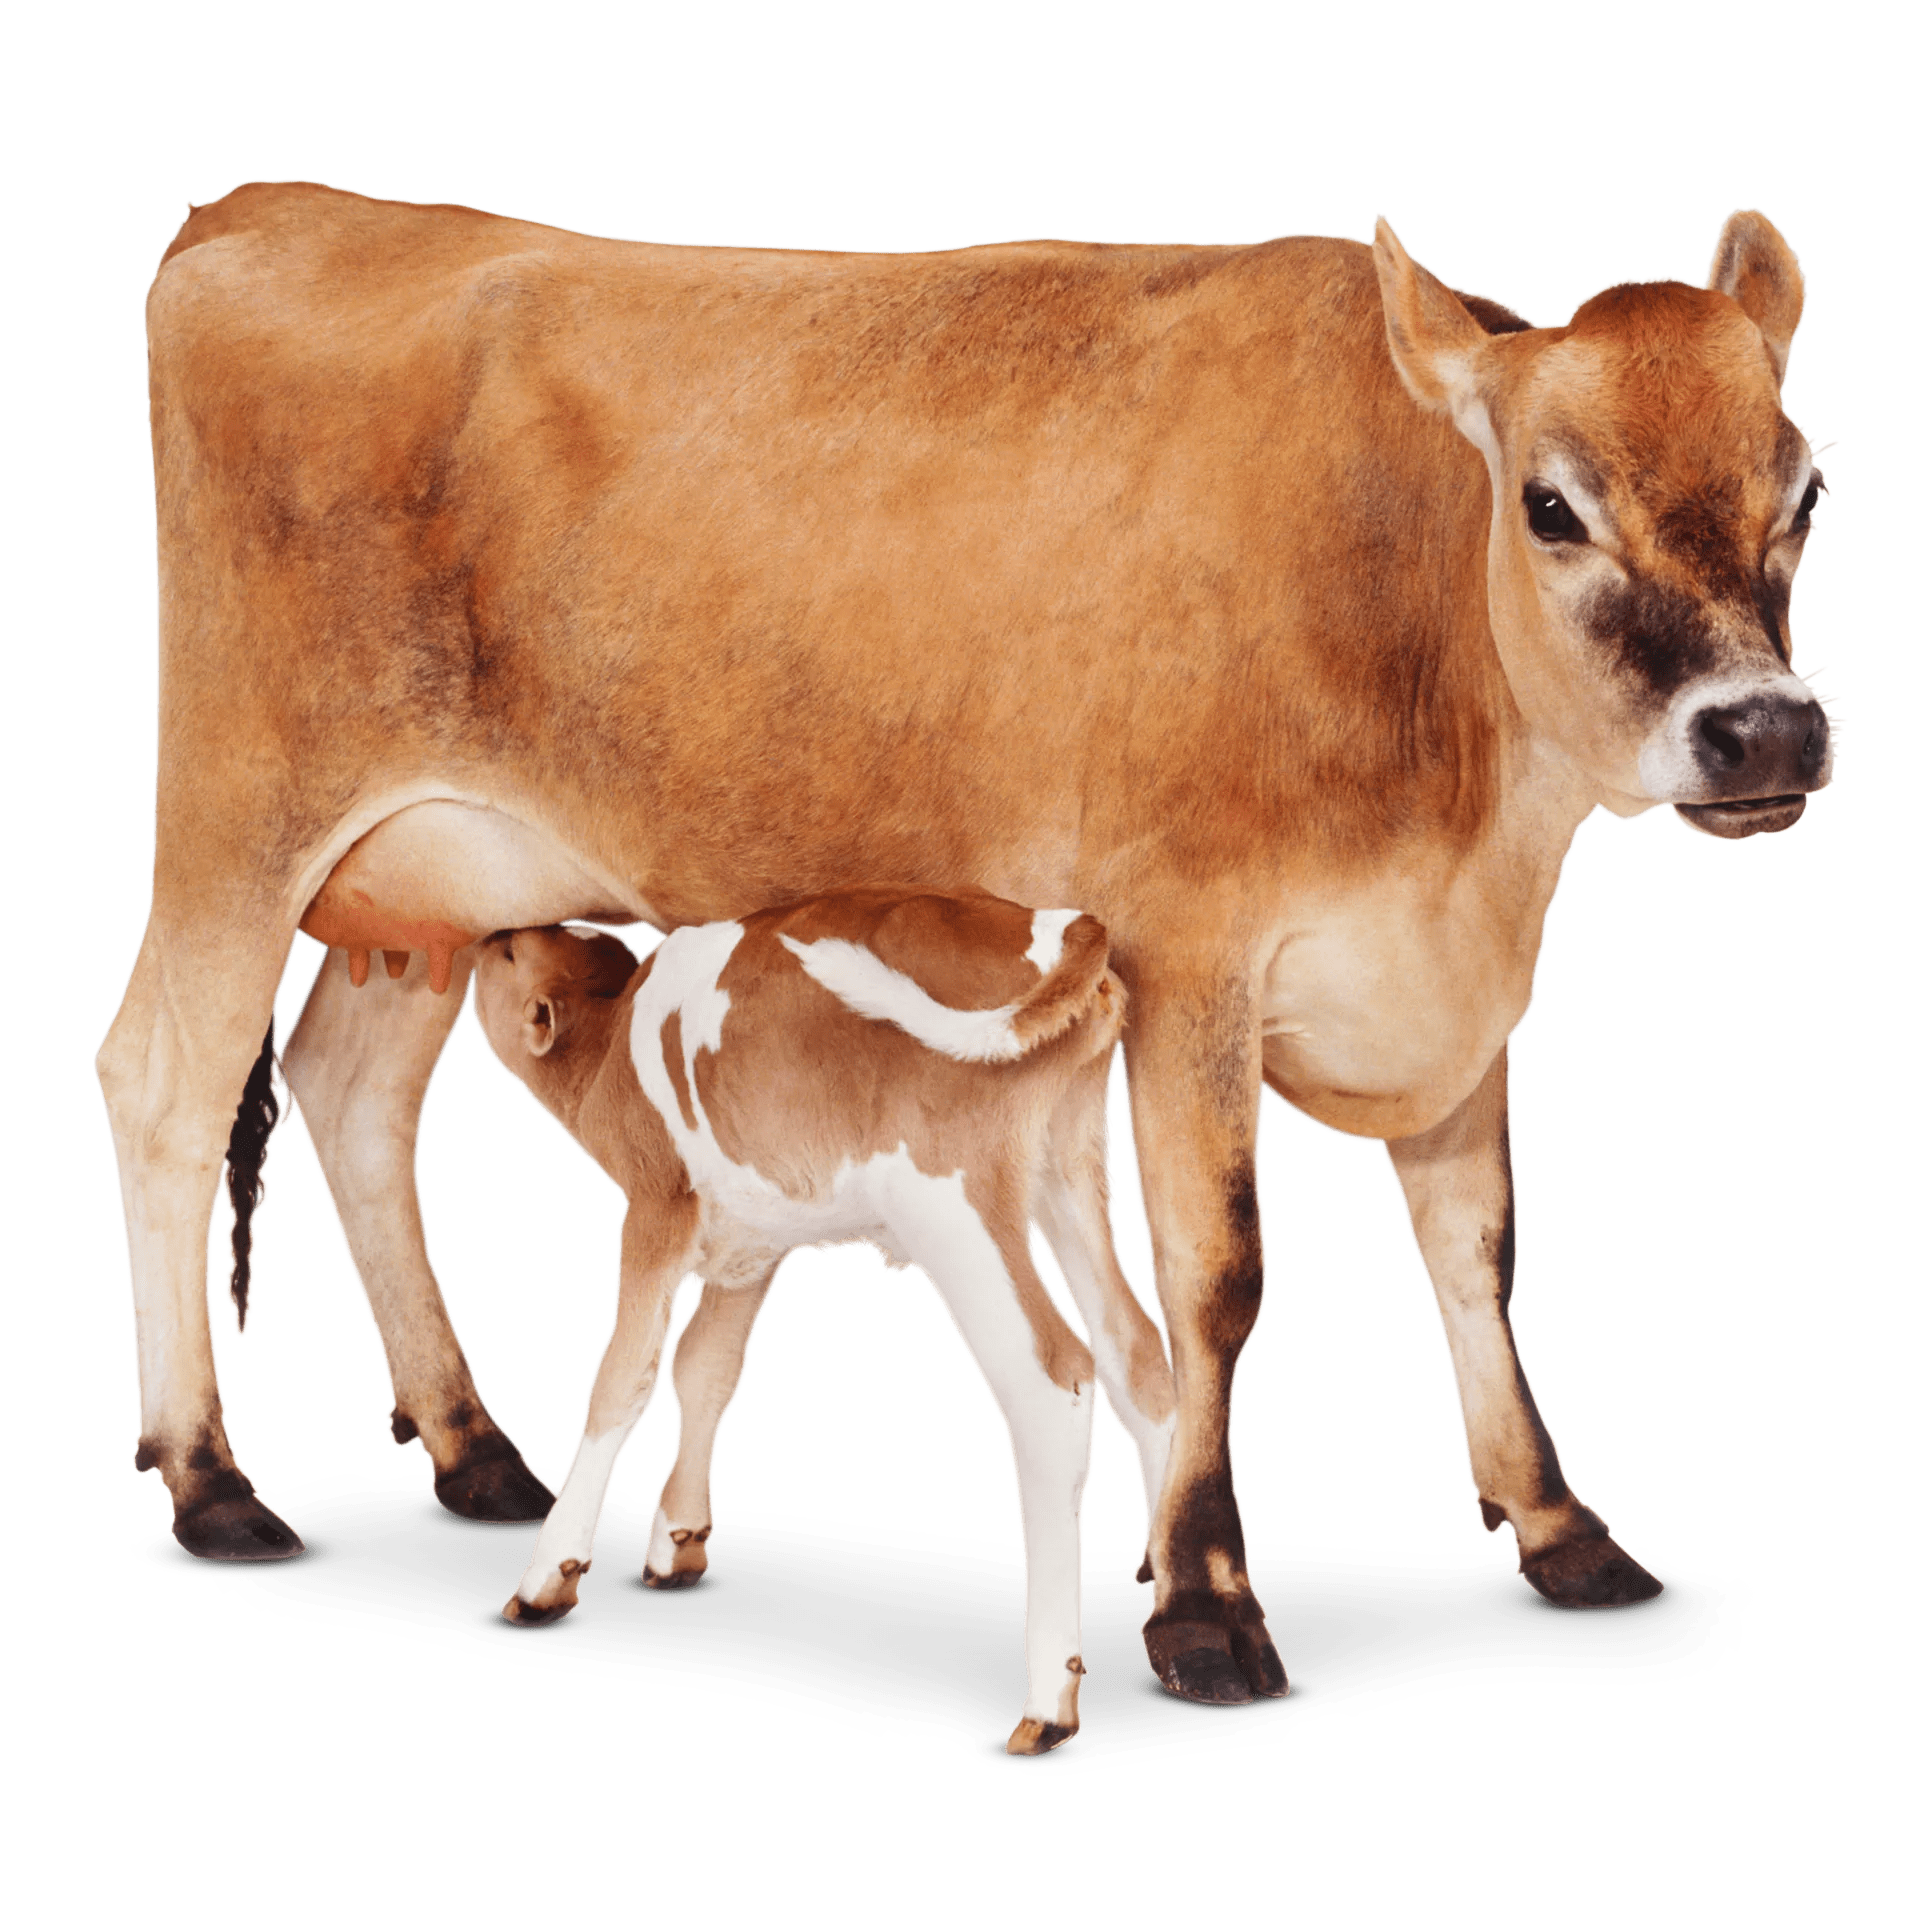 cow facts for kids